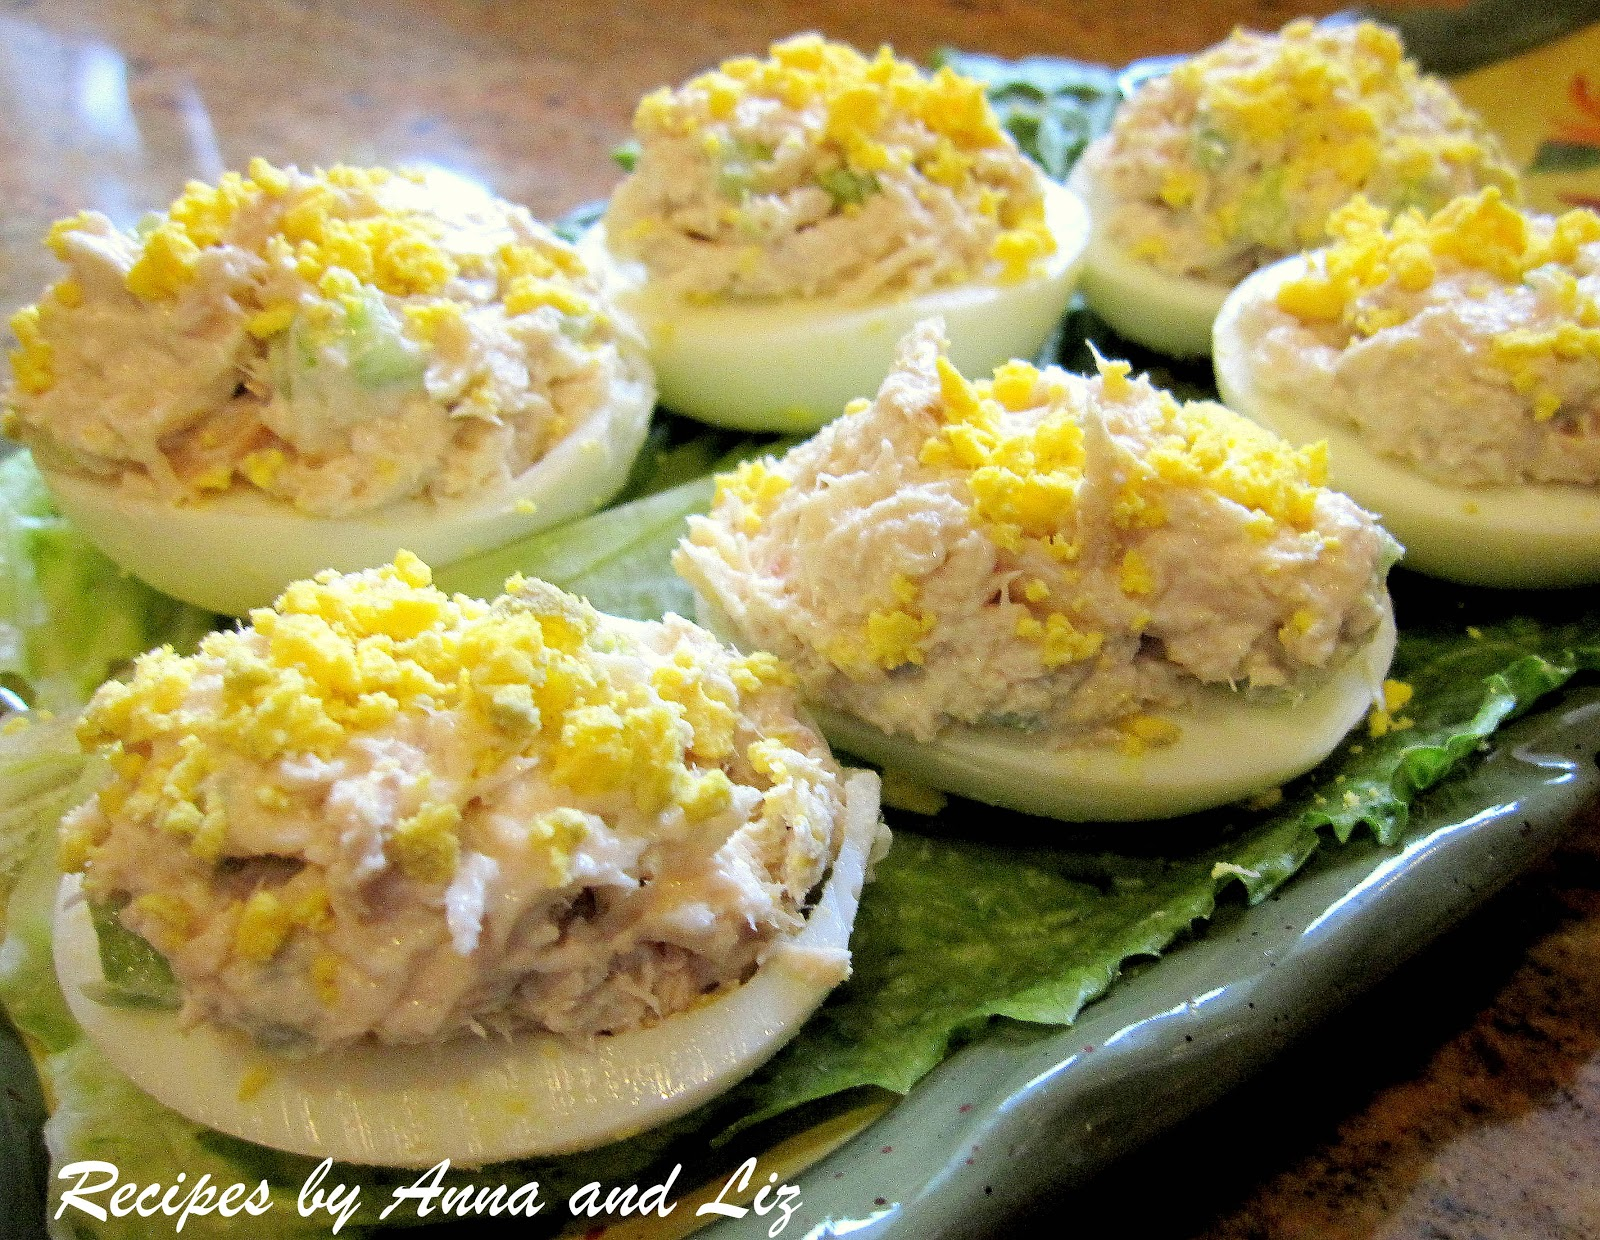 Tuna stuffed deviled eggs 2 sisters recipes by anna and liz for Tuna fish salad recipe with egg